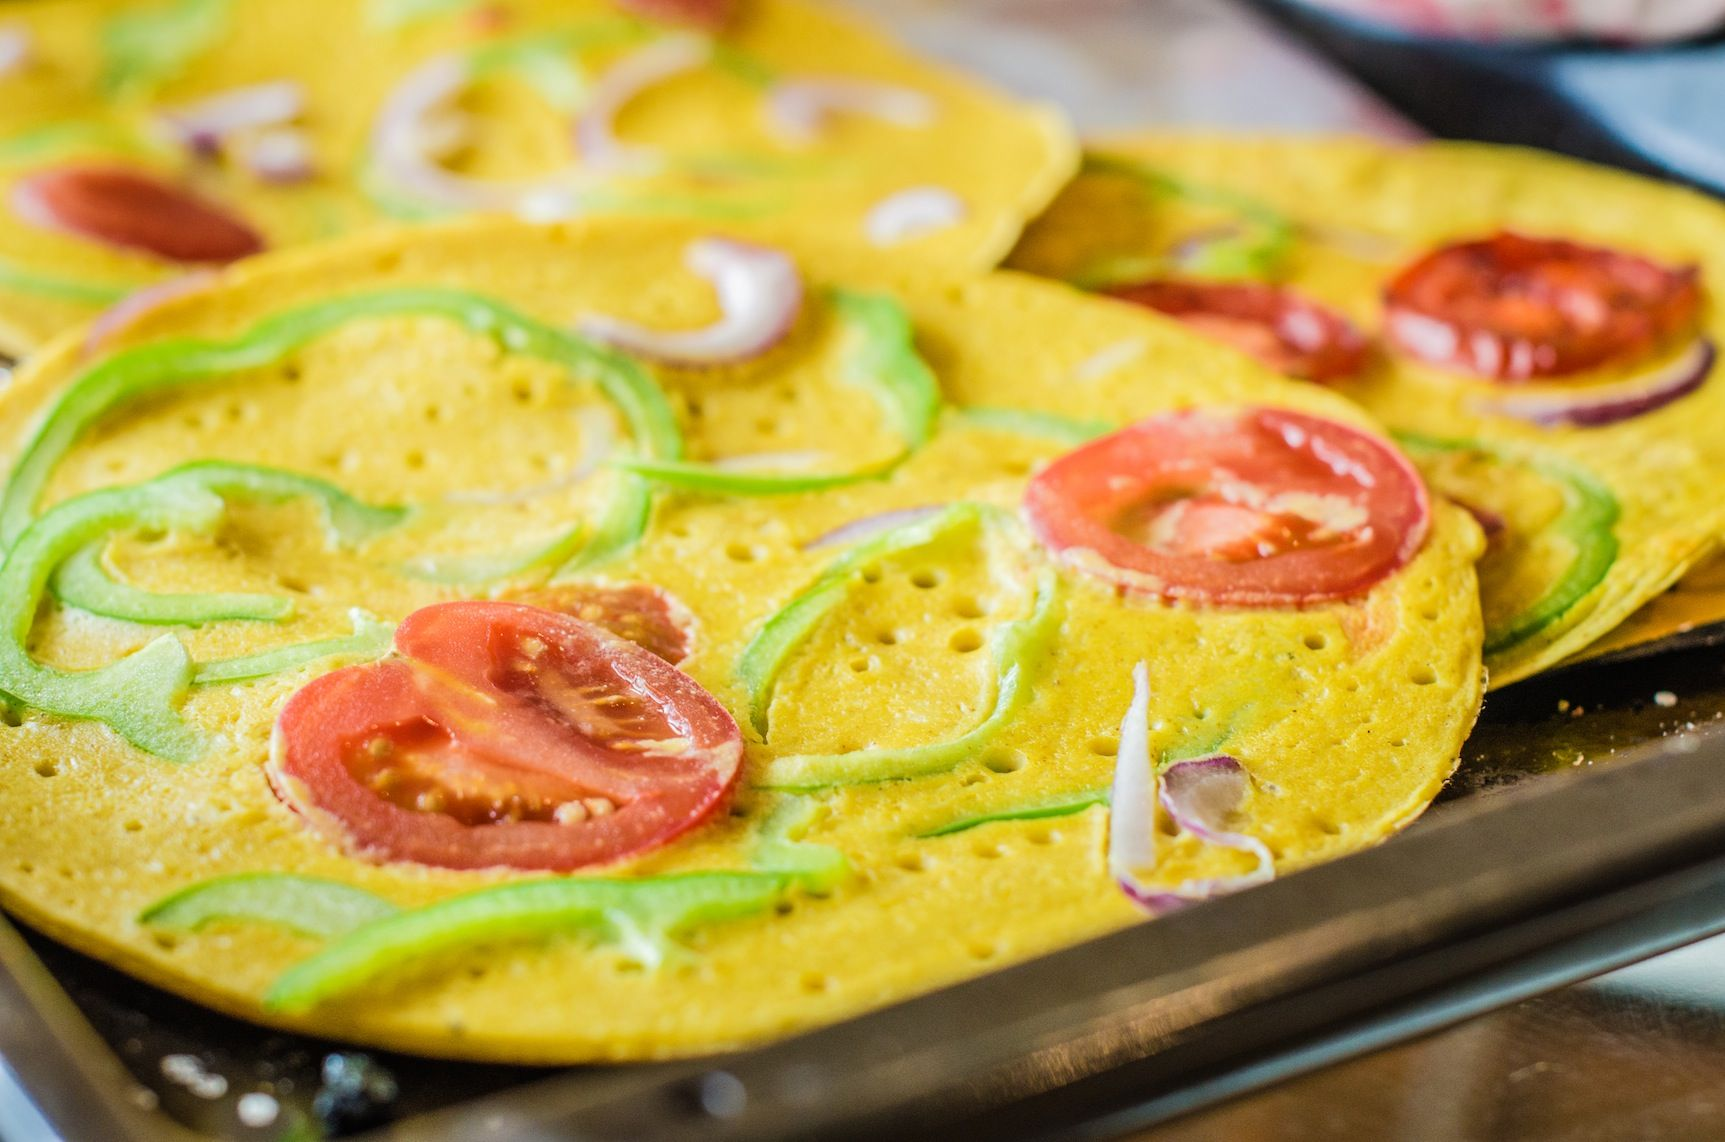 Gram flour is just a superb, under-used ingredient! When you can create these tasty and uber-healthy chickpea omelette beauties, it will become a staple...